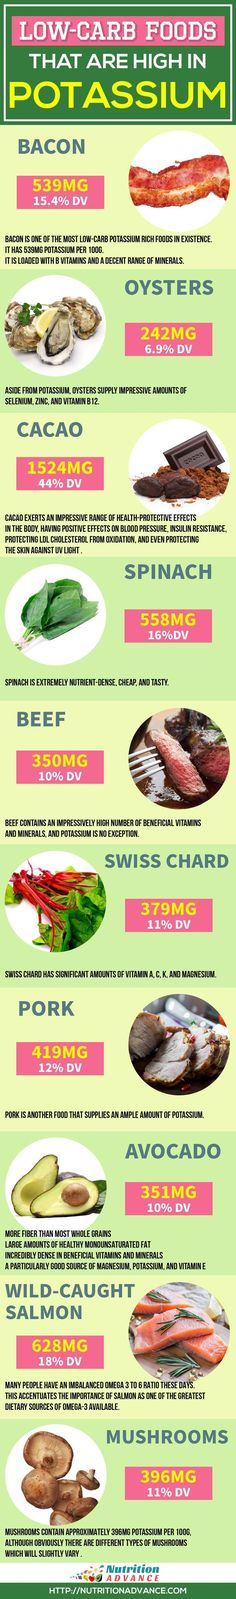 Low Carb Foods High in Potassium. This article shows 10 low carb foods that are some of the highest sources of the mineral potassium. This mineral is an essential electrolyte for our body, so it's important to ensure we get enough. In fact, many people restrict salt for better health - but in truth the potassium/salt ratio is much more important. These foods are all low carb and also suitable for other natural eating plans like keto and paleo.